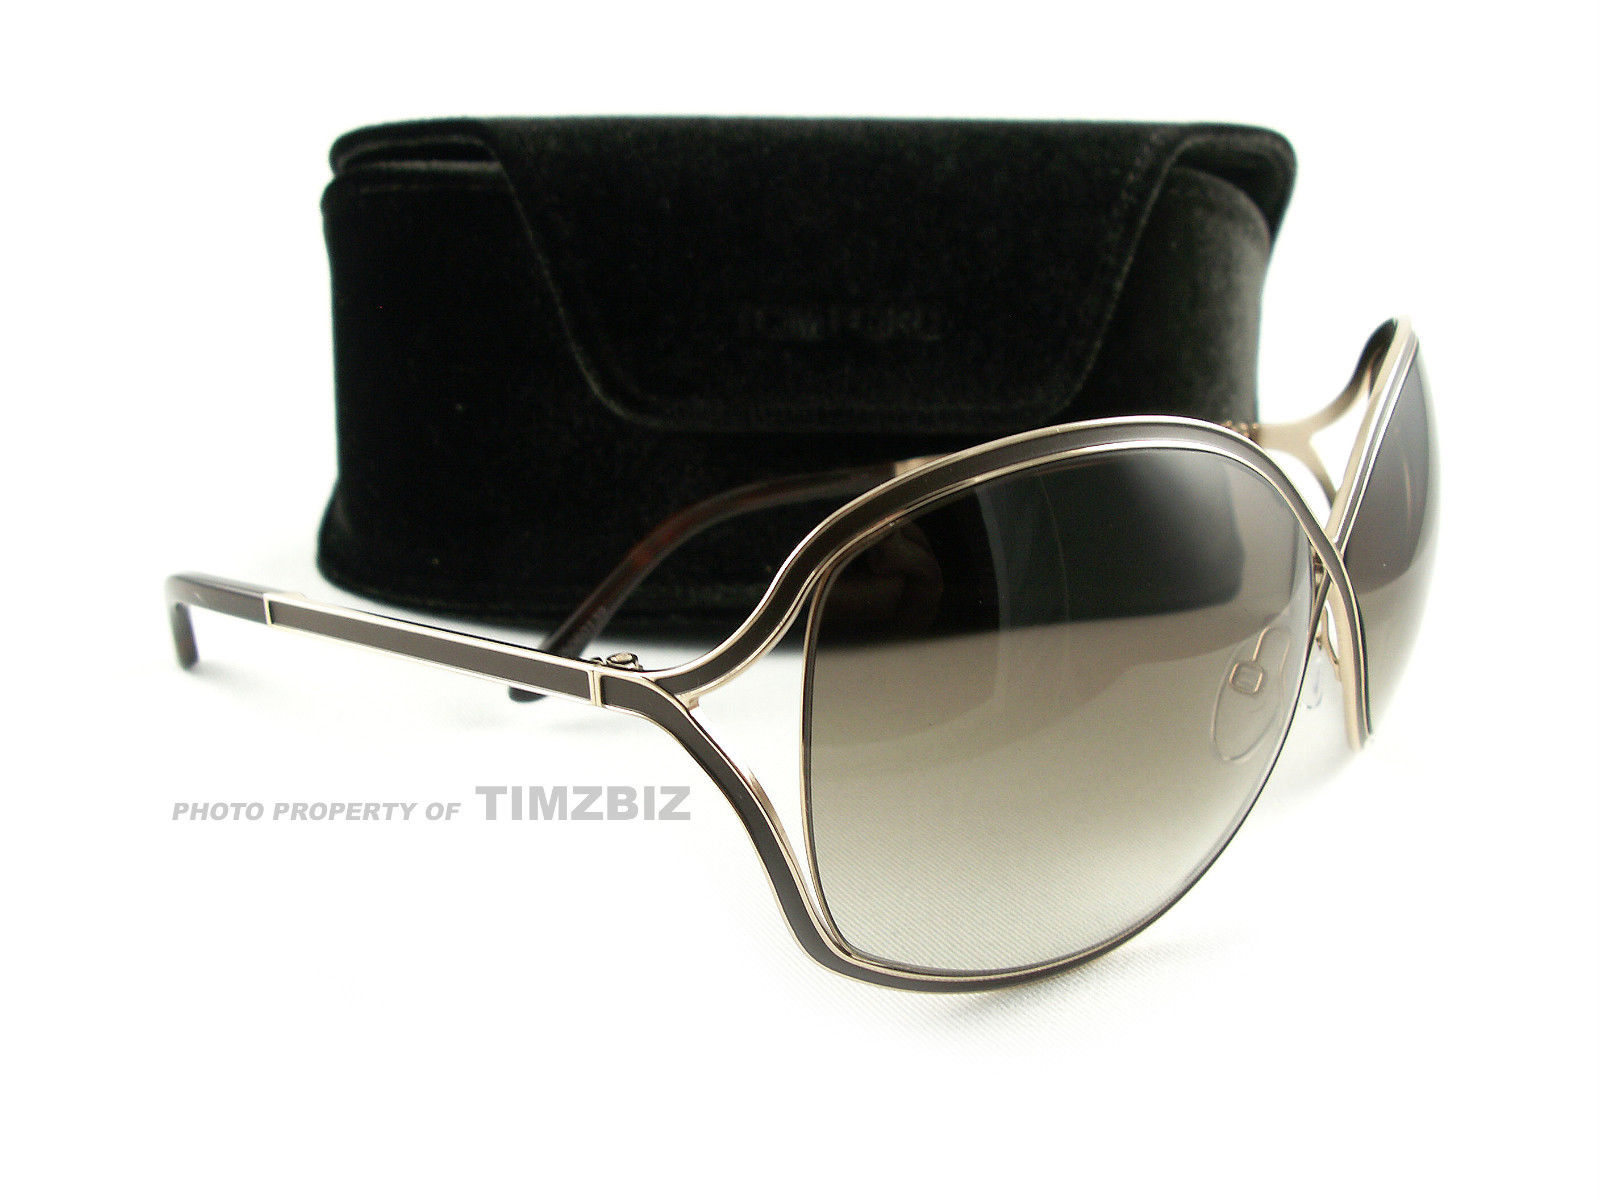 Tom Ford Sunglasses tf179 rich 48 f golden brown ft0179 / s sunglasses men and women personality